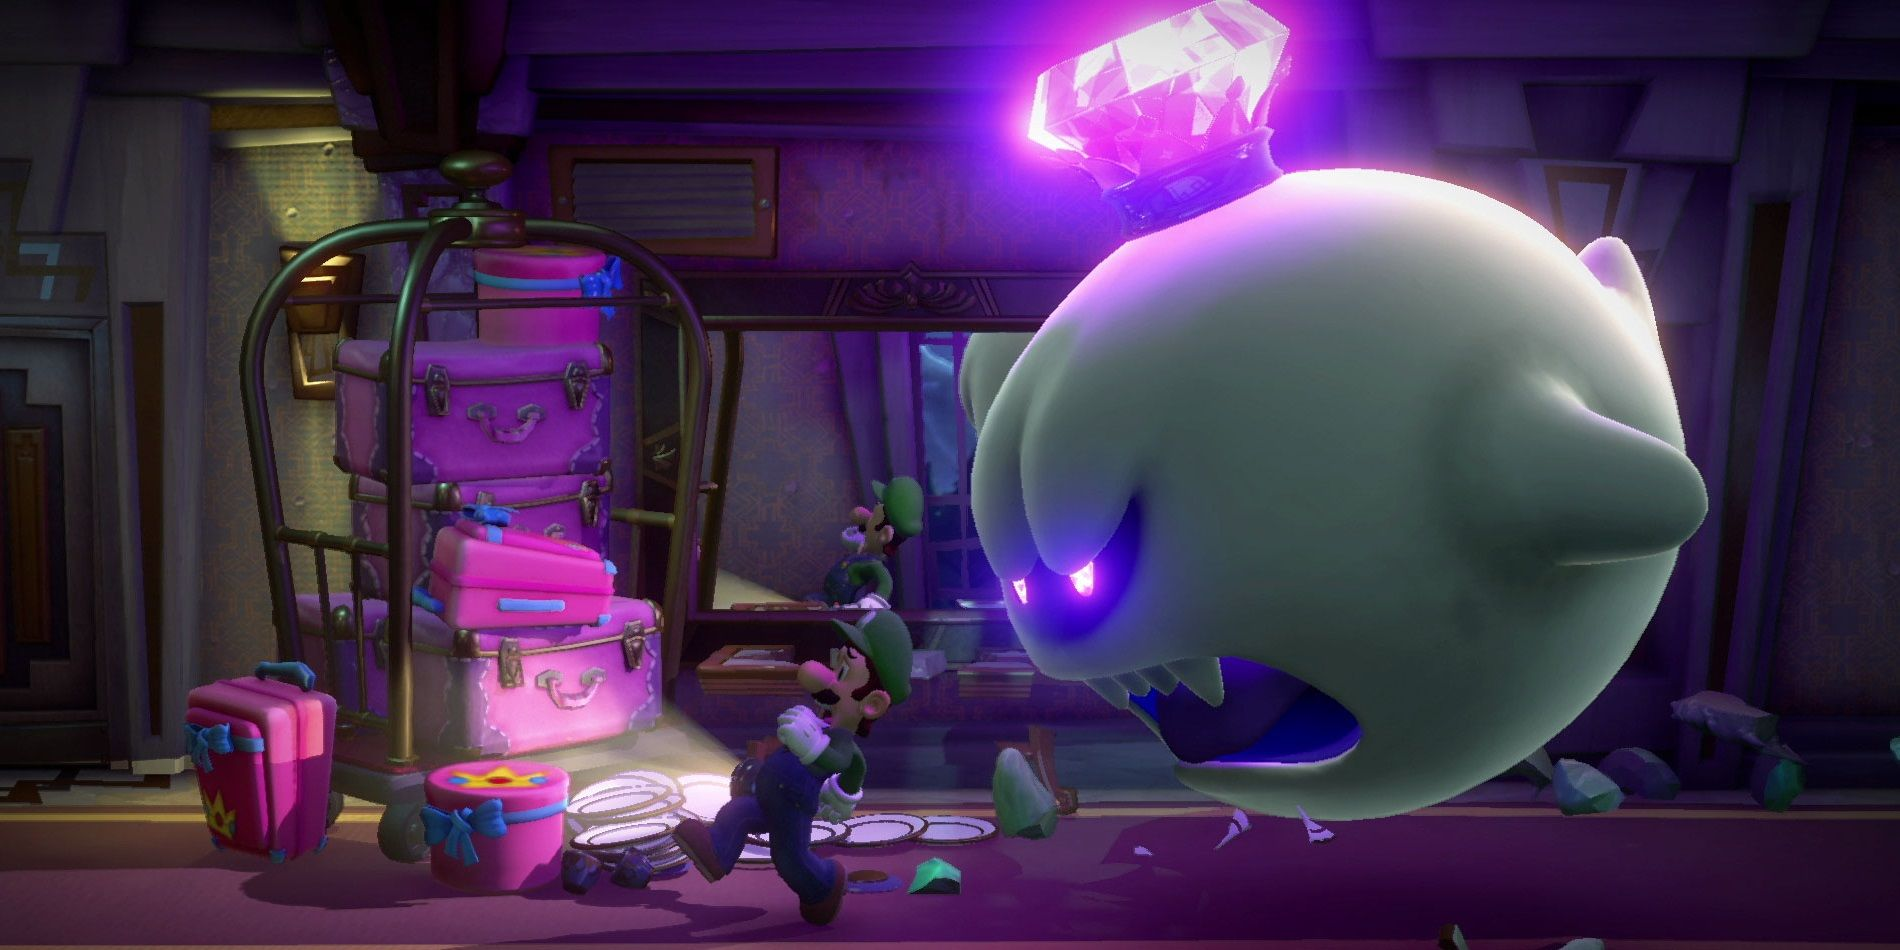 Luigi S Mansion 3 Will Have Better Bosses And More Puzzles